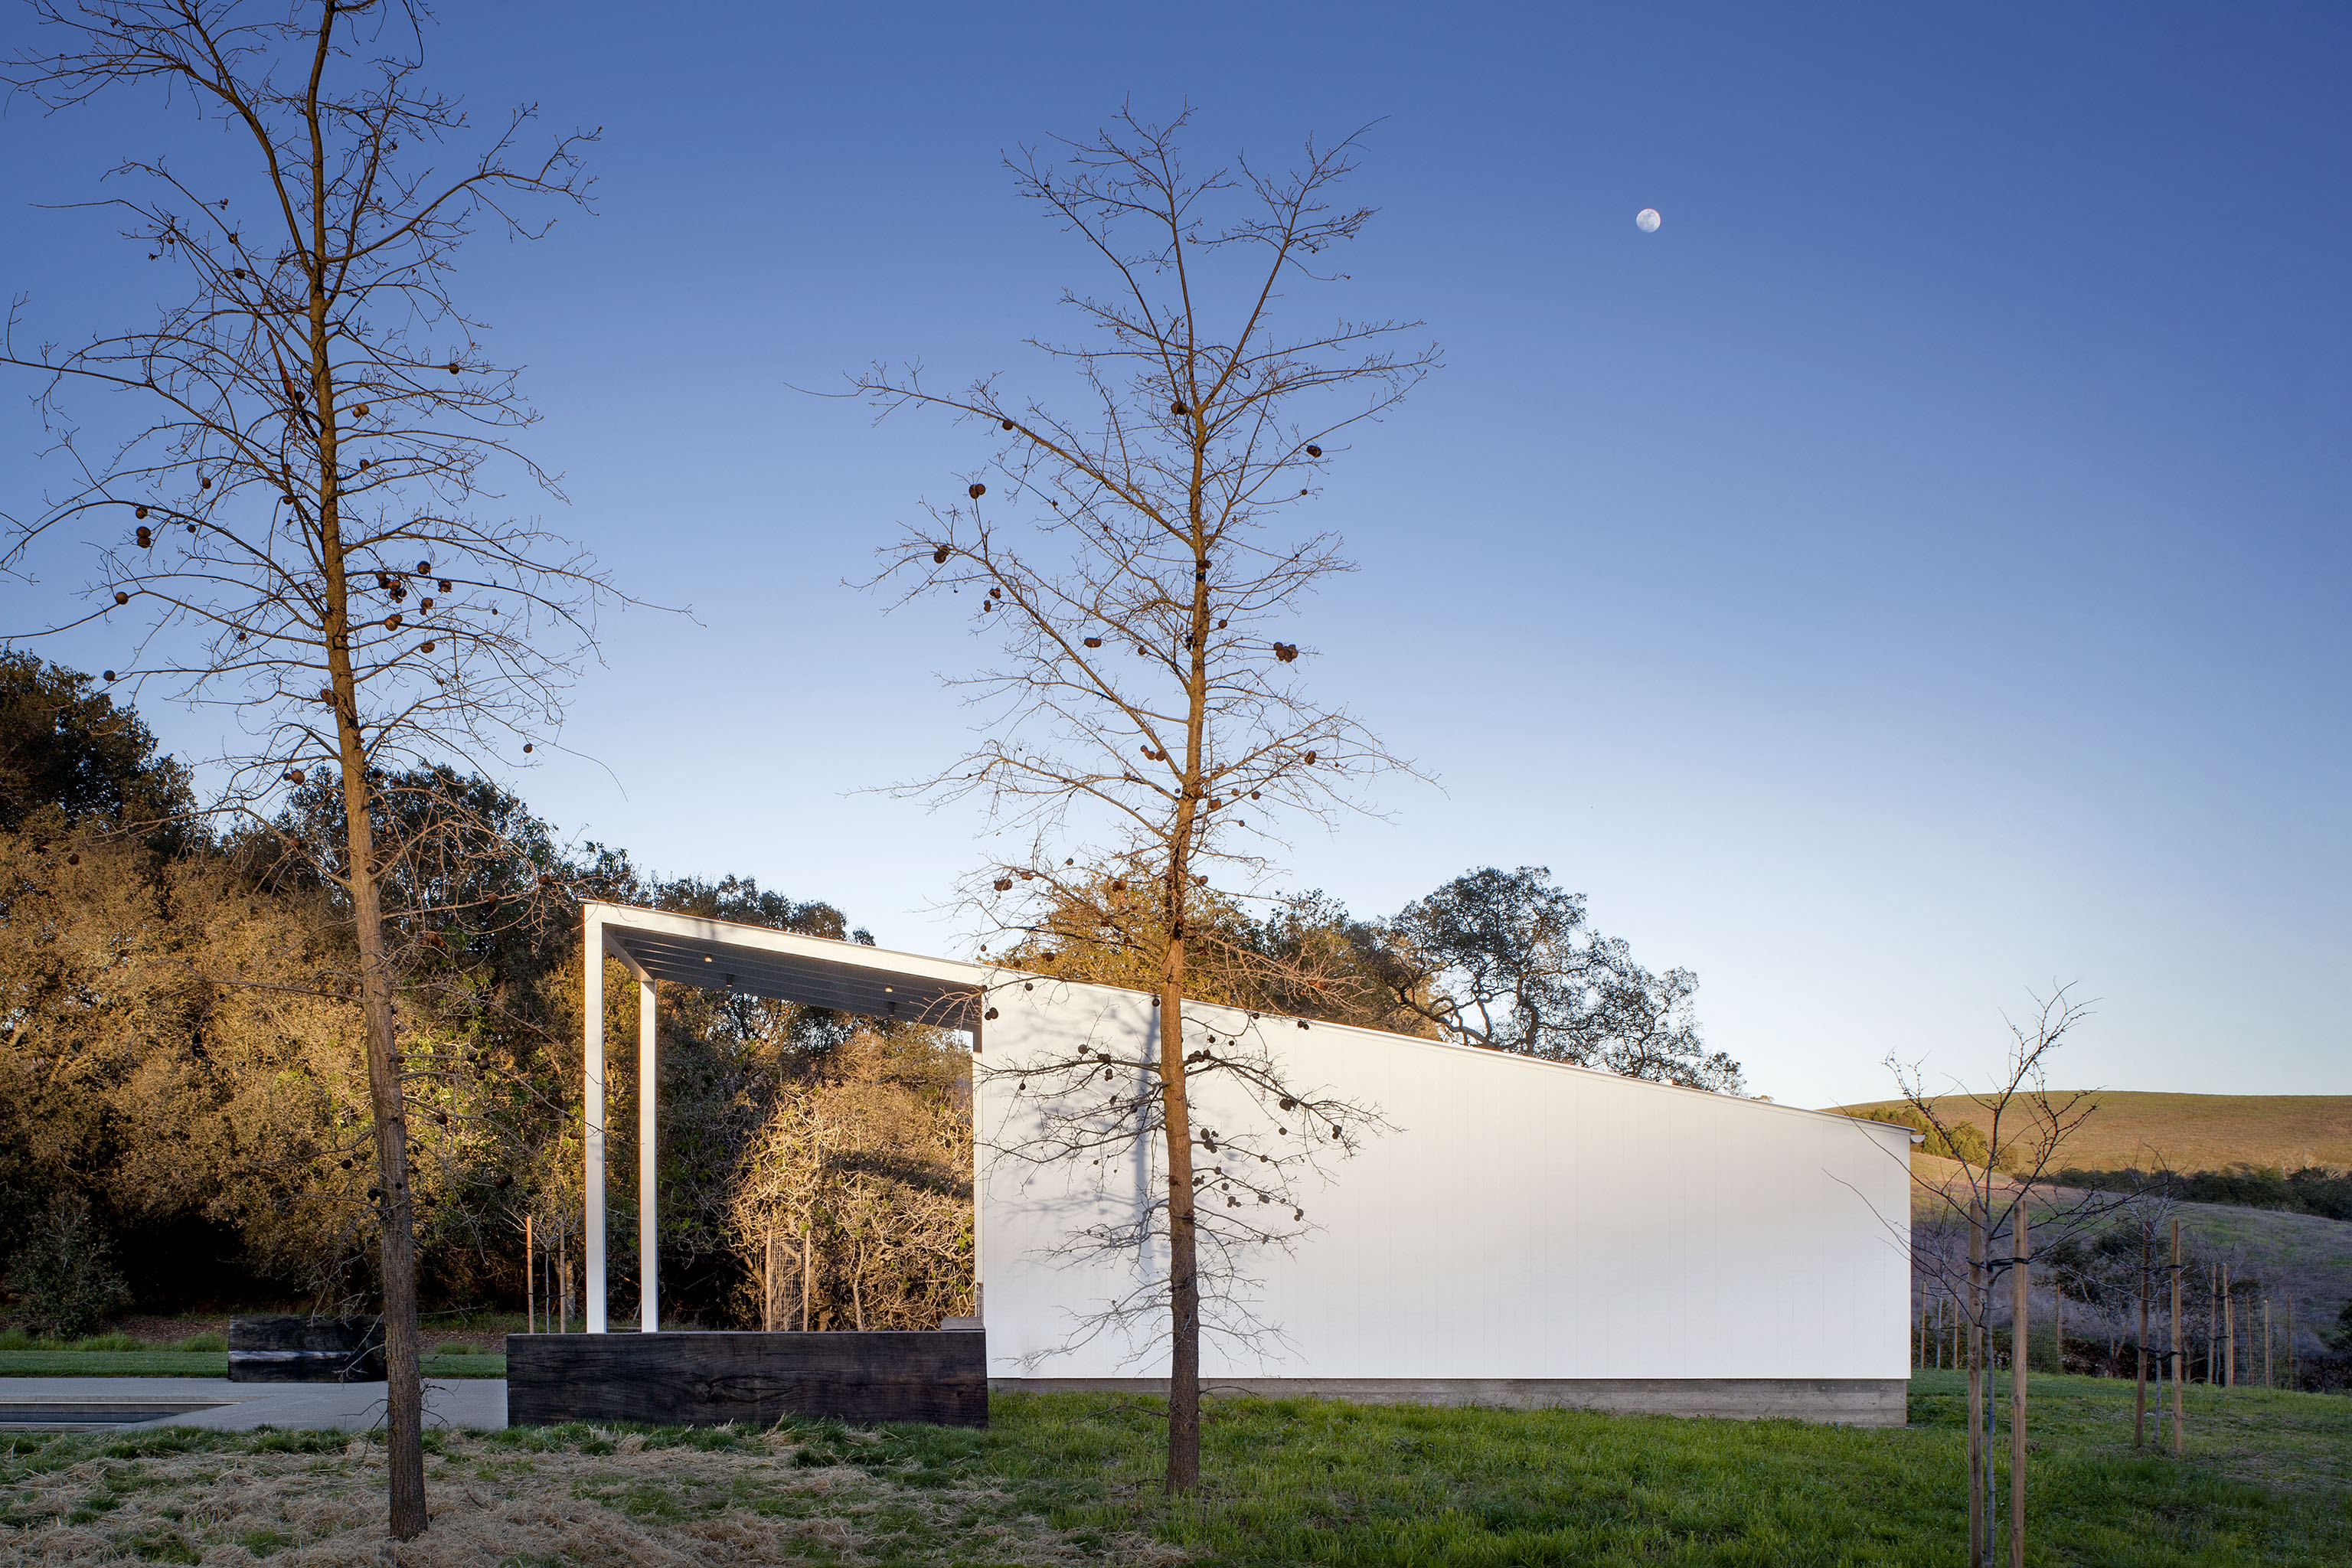 From the side, we can see the pool house roof soaring over part of the patio space, mimicking the gentle slopes of the surrounding landscape.